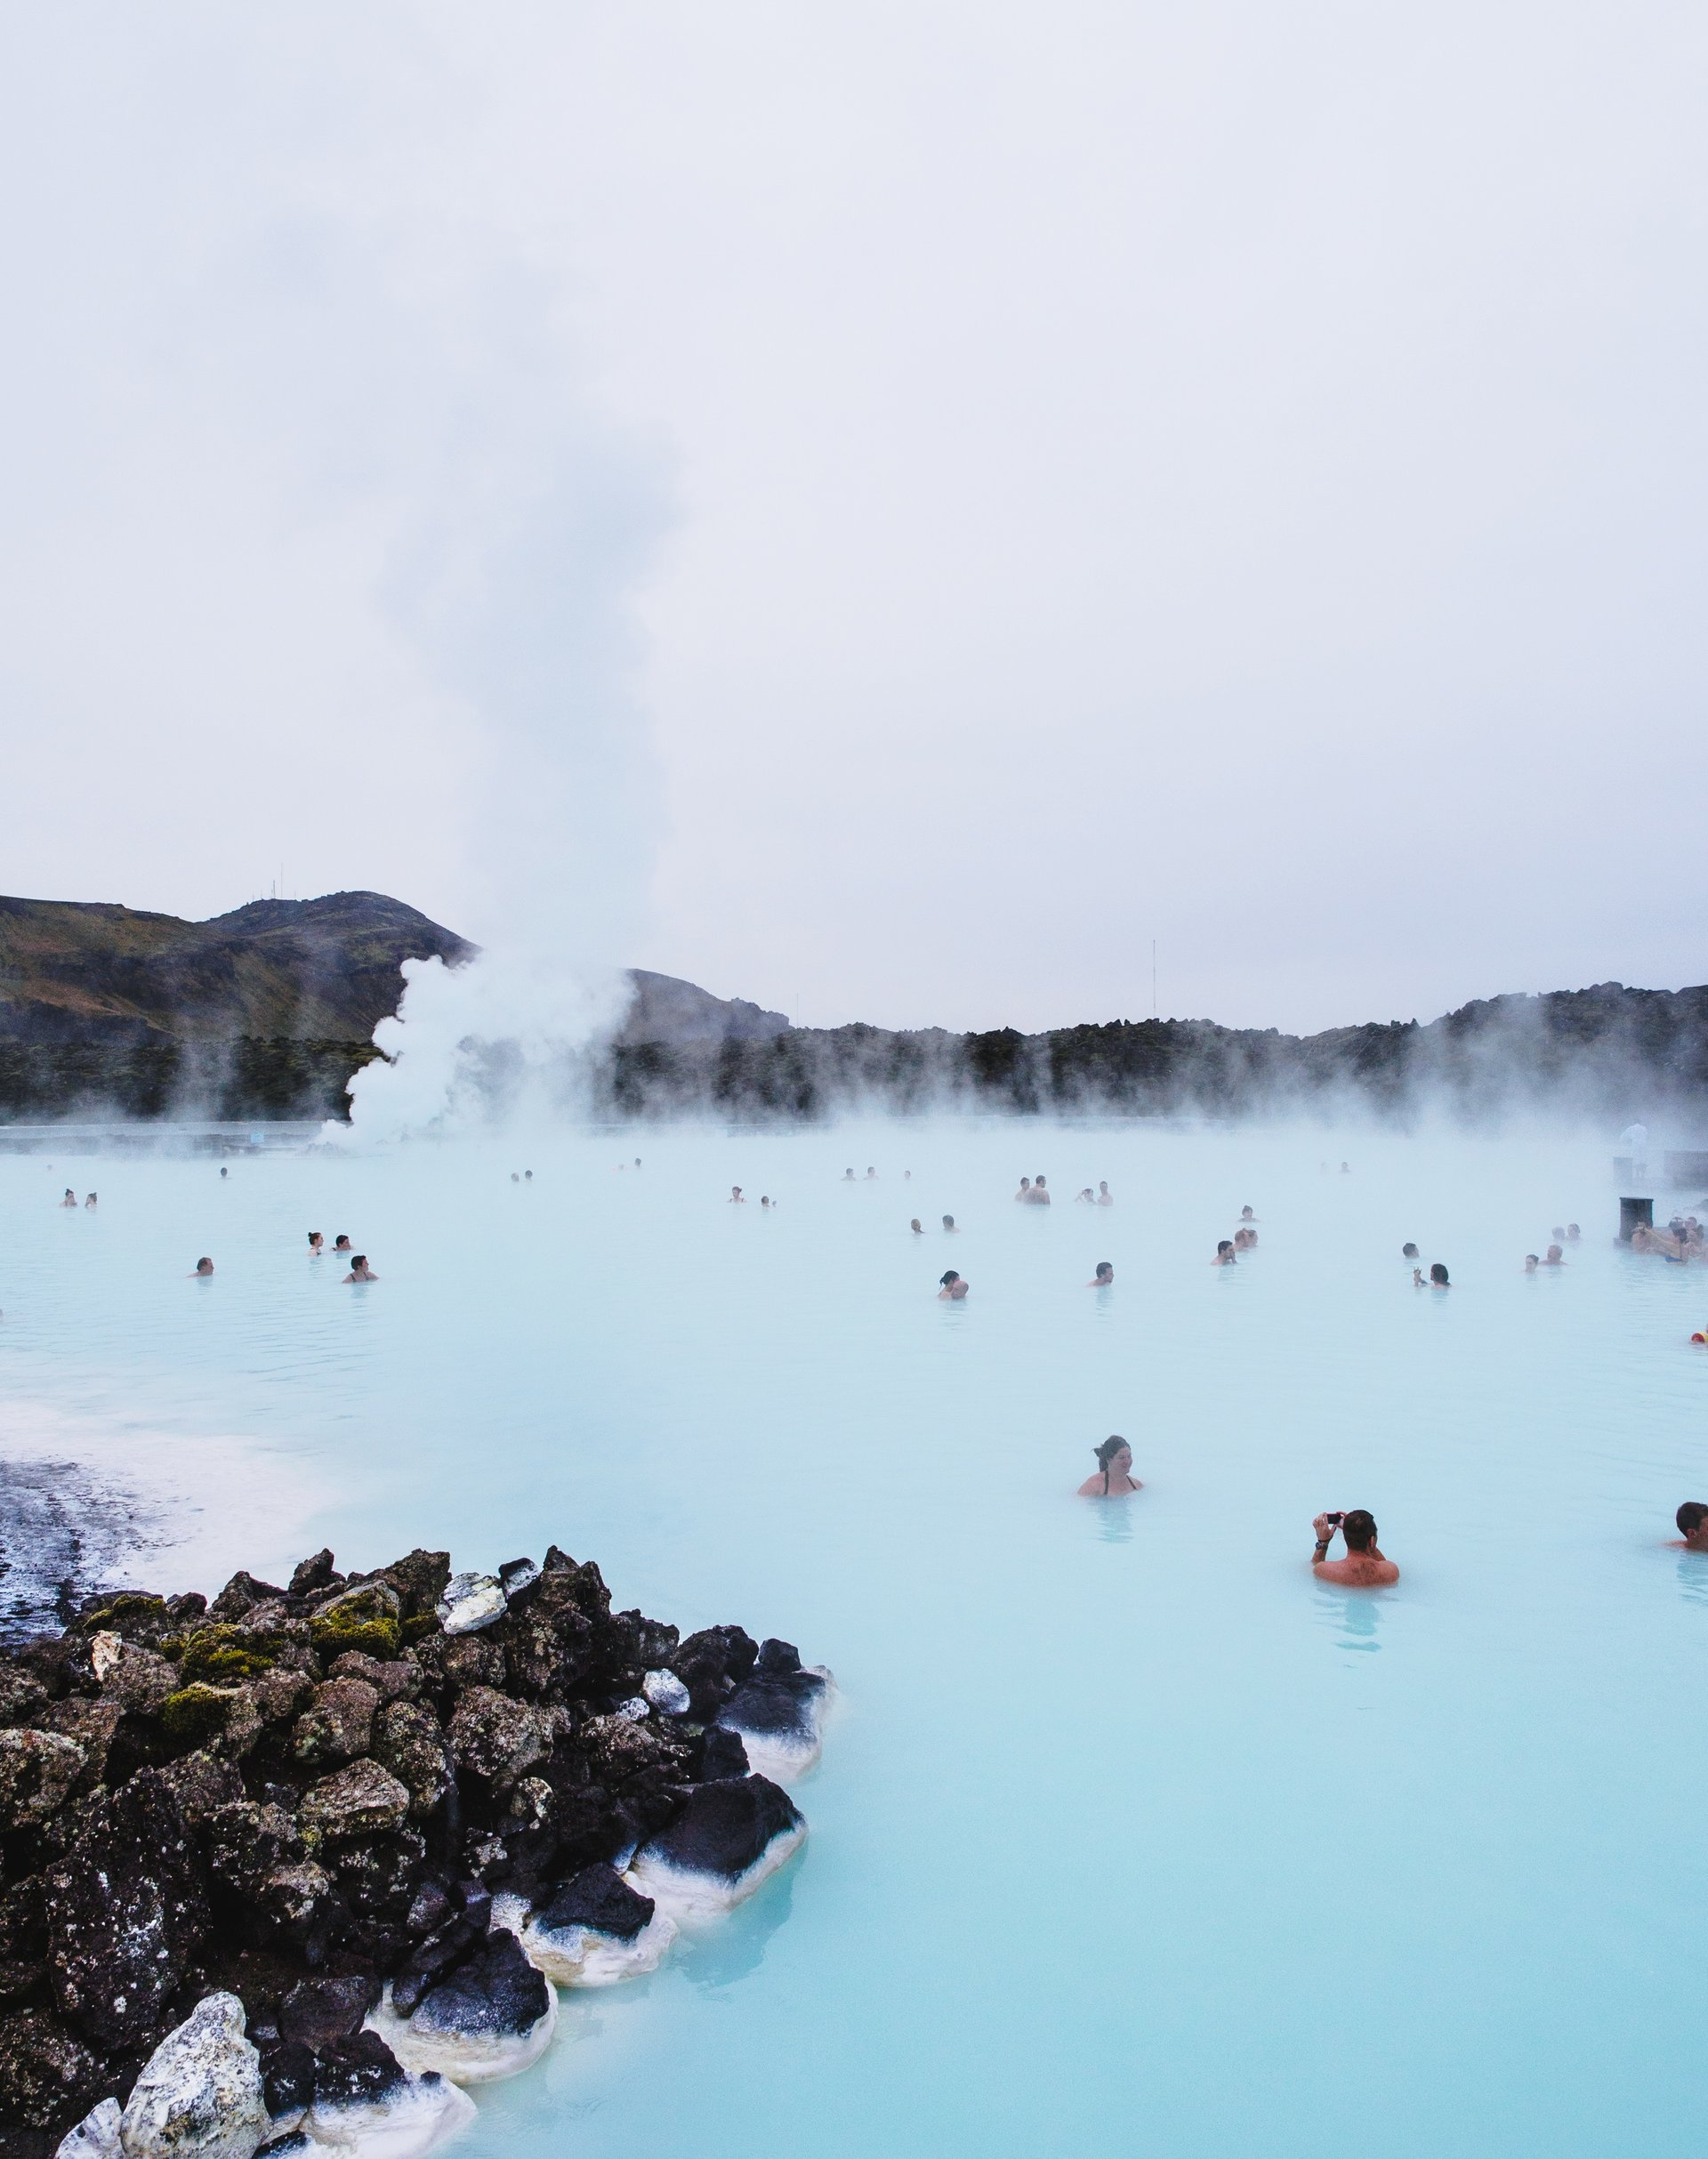 Blue Lagoon Geothermal Spa in Iceland - Best Time